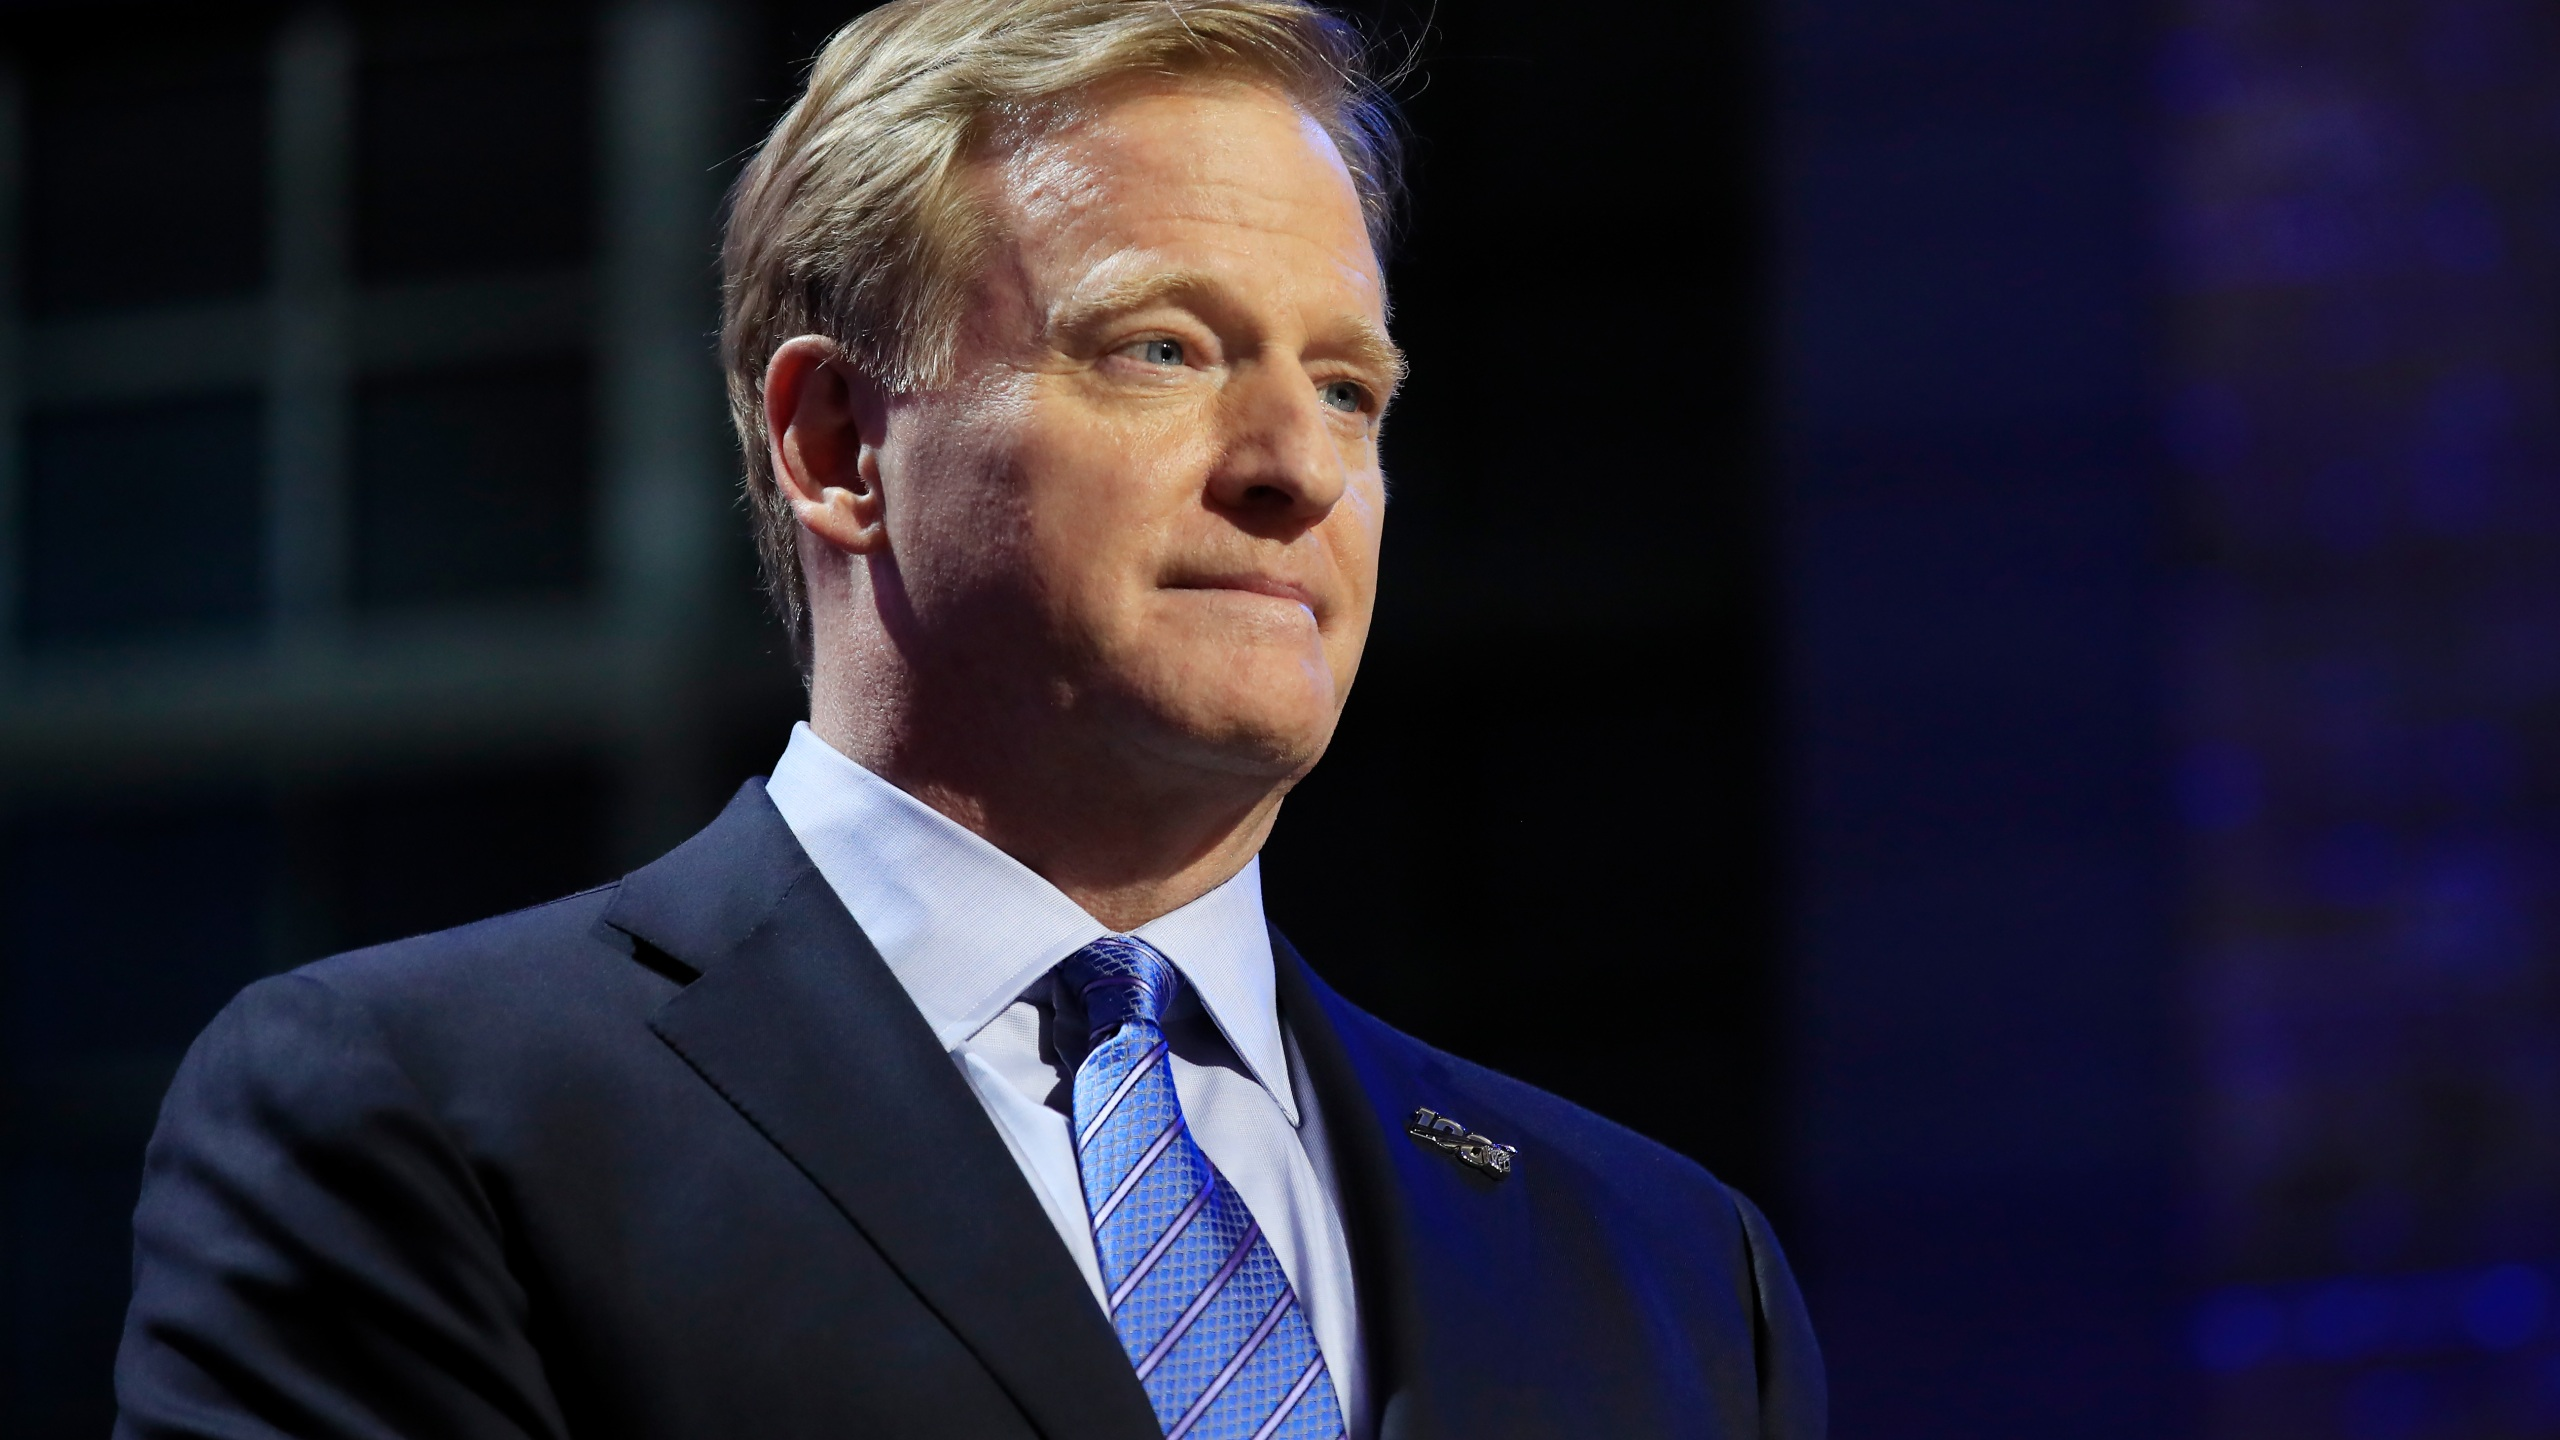 NFL Commissioner Roger Goodell speaks during the first round of the draft on April 25, 2019, in Nashville, Tennessee. (Andy Lyons / Getty Images)